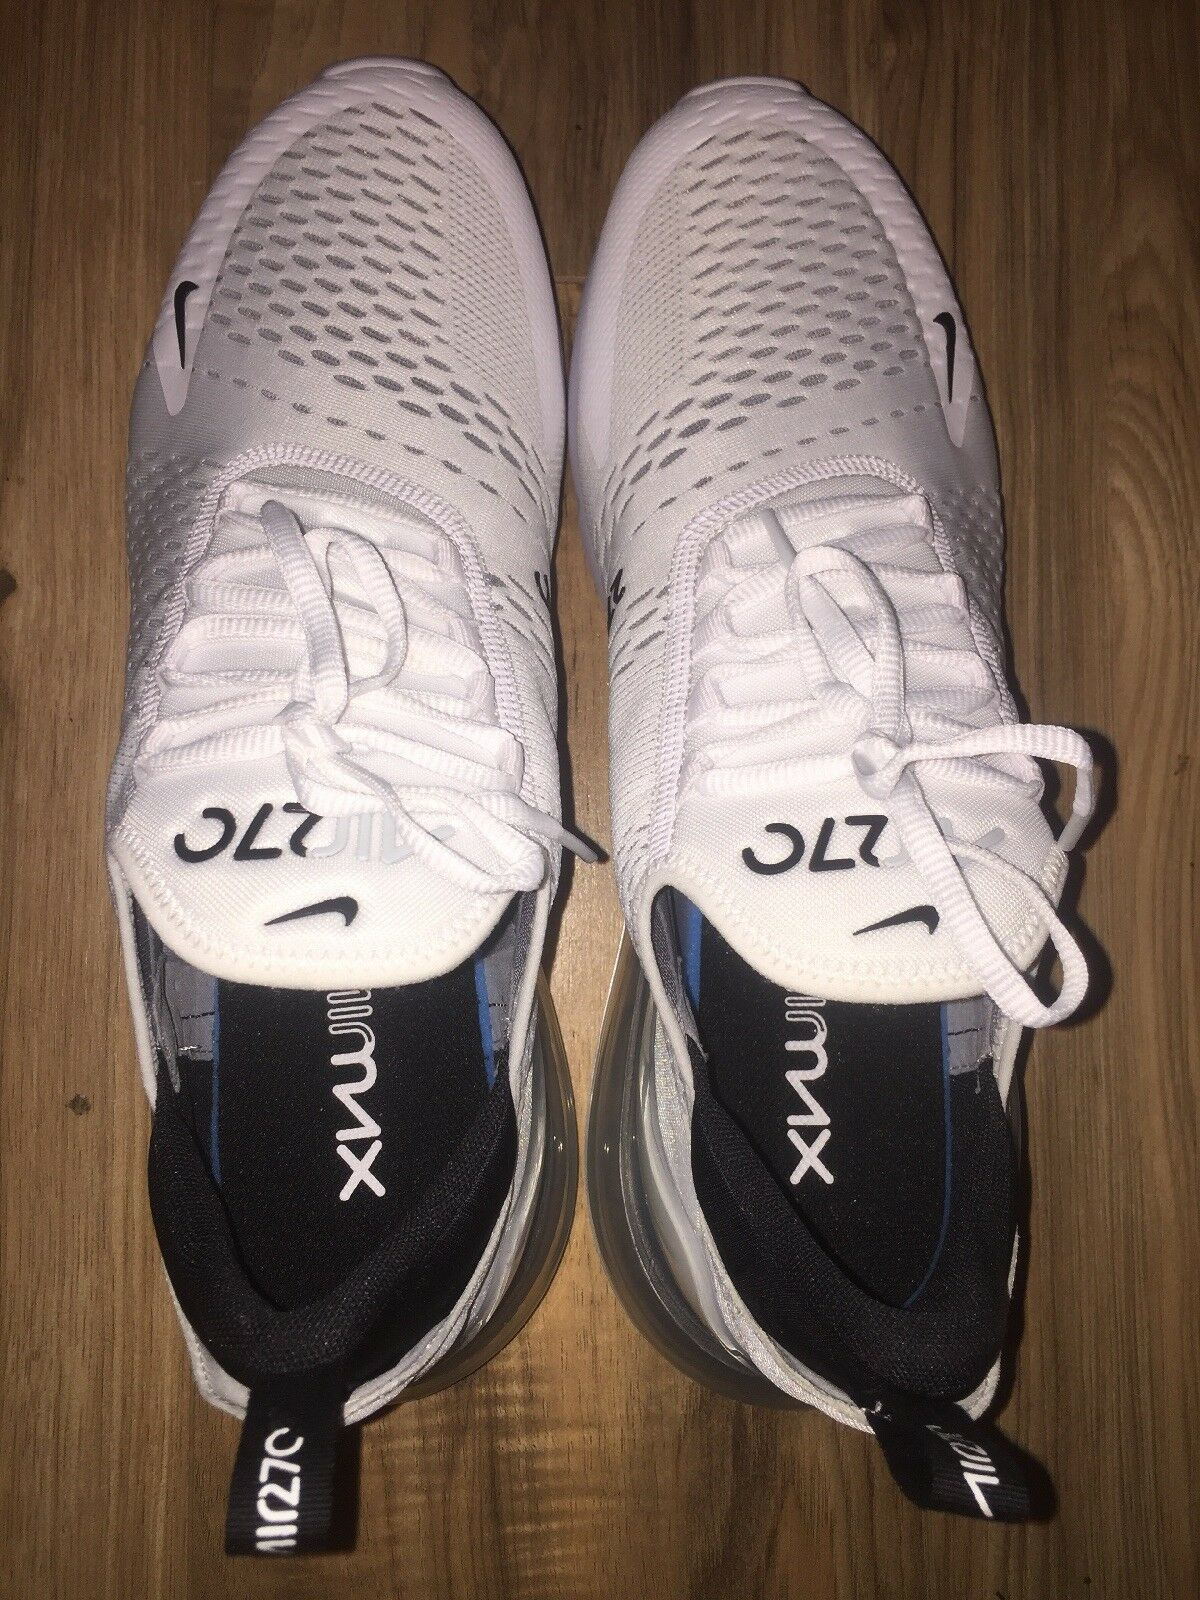 Nike Air Max 270 White Black Mens AH8050-100 shoes Size 13 Brand New DS